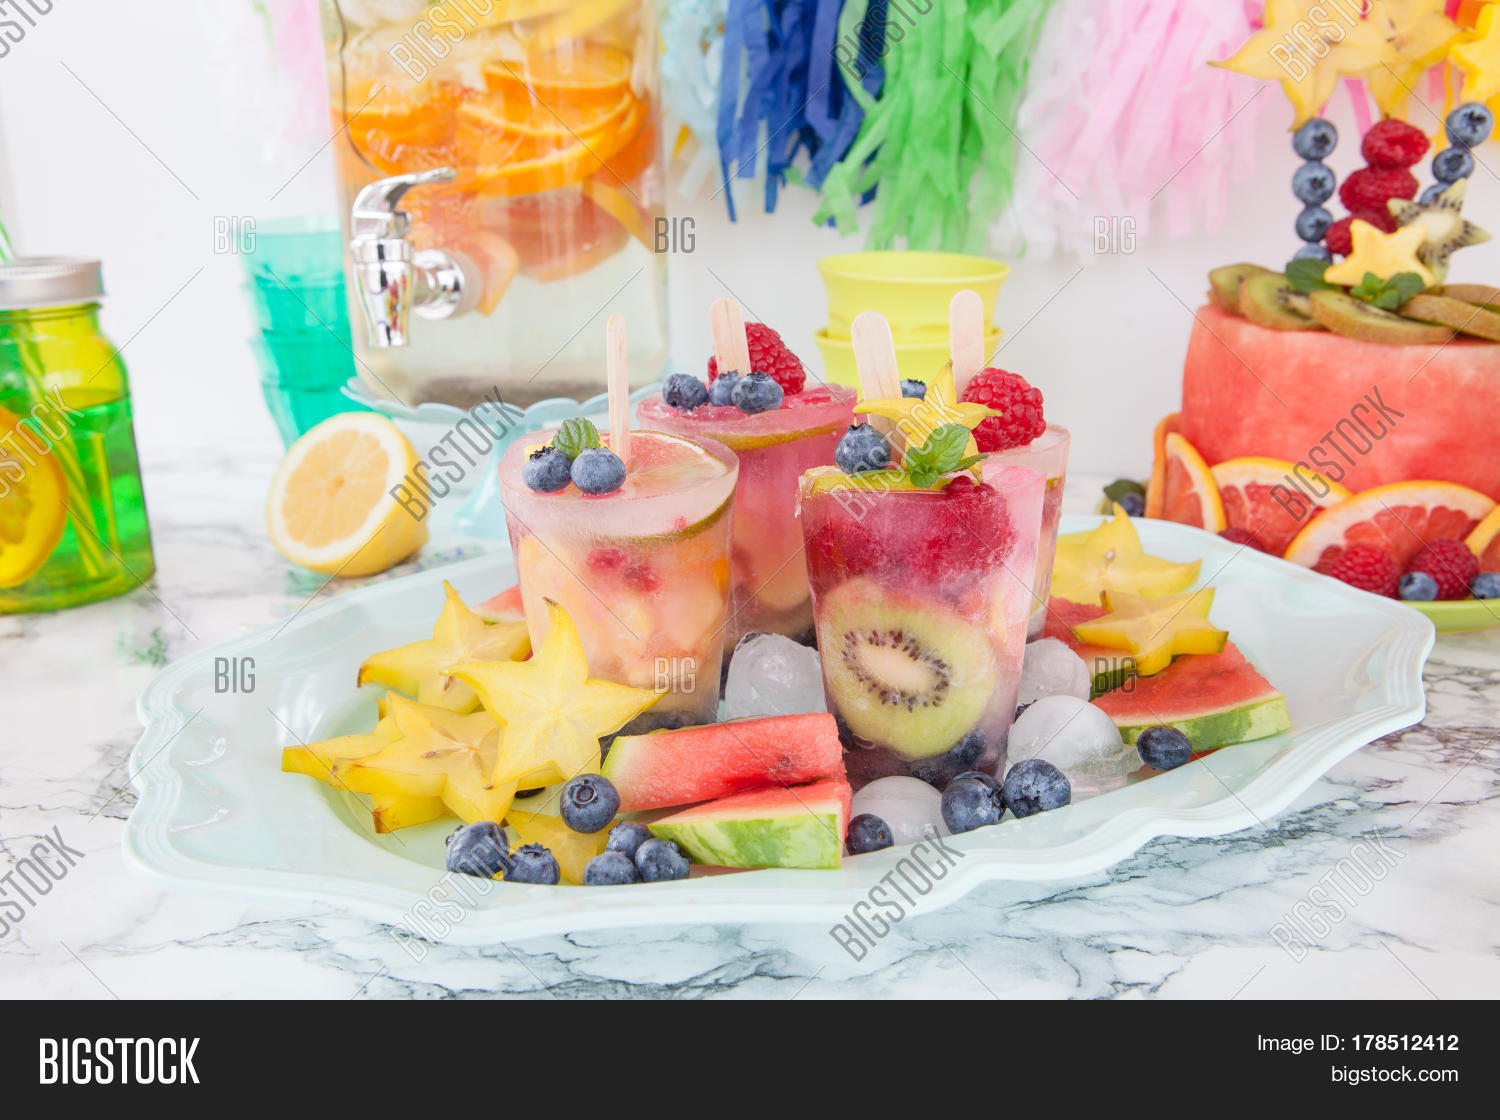 Homemade Frozen Popsicles Made Image Photo Bigstock